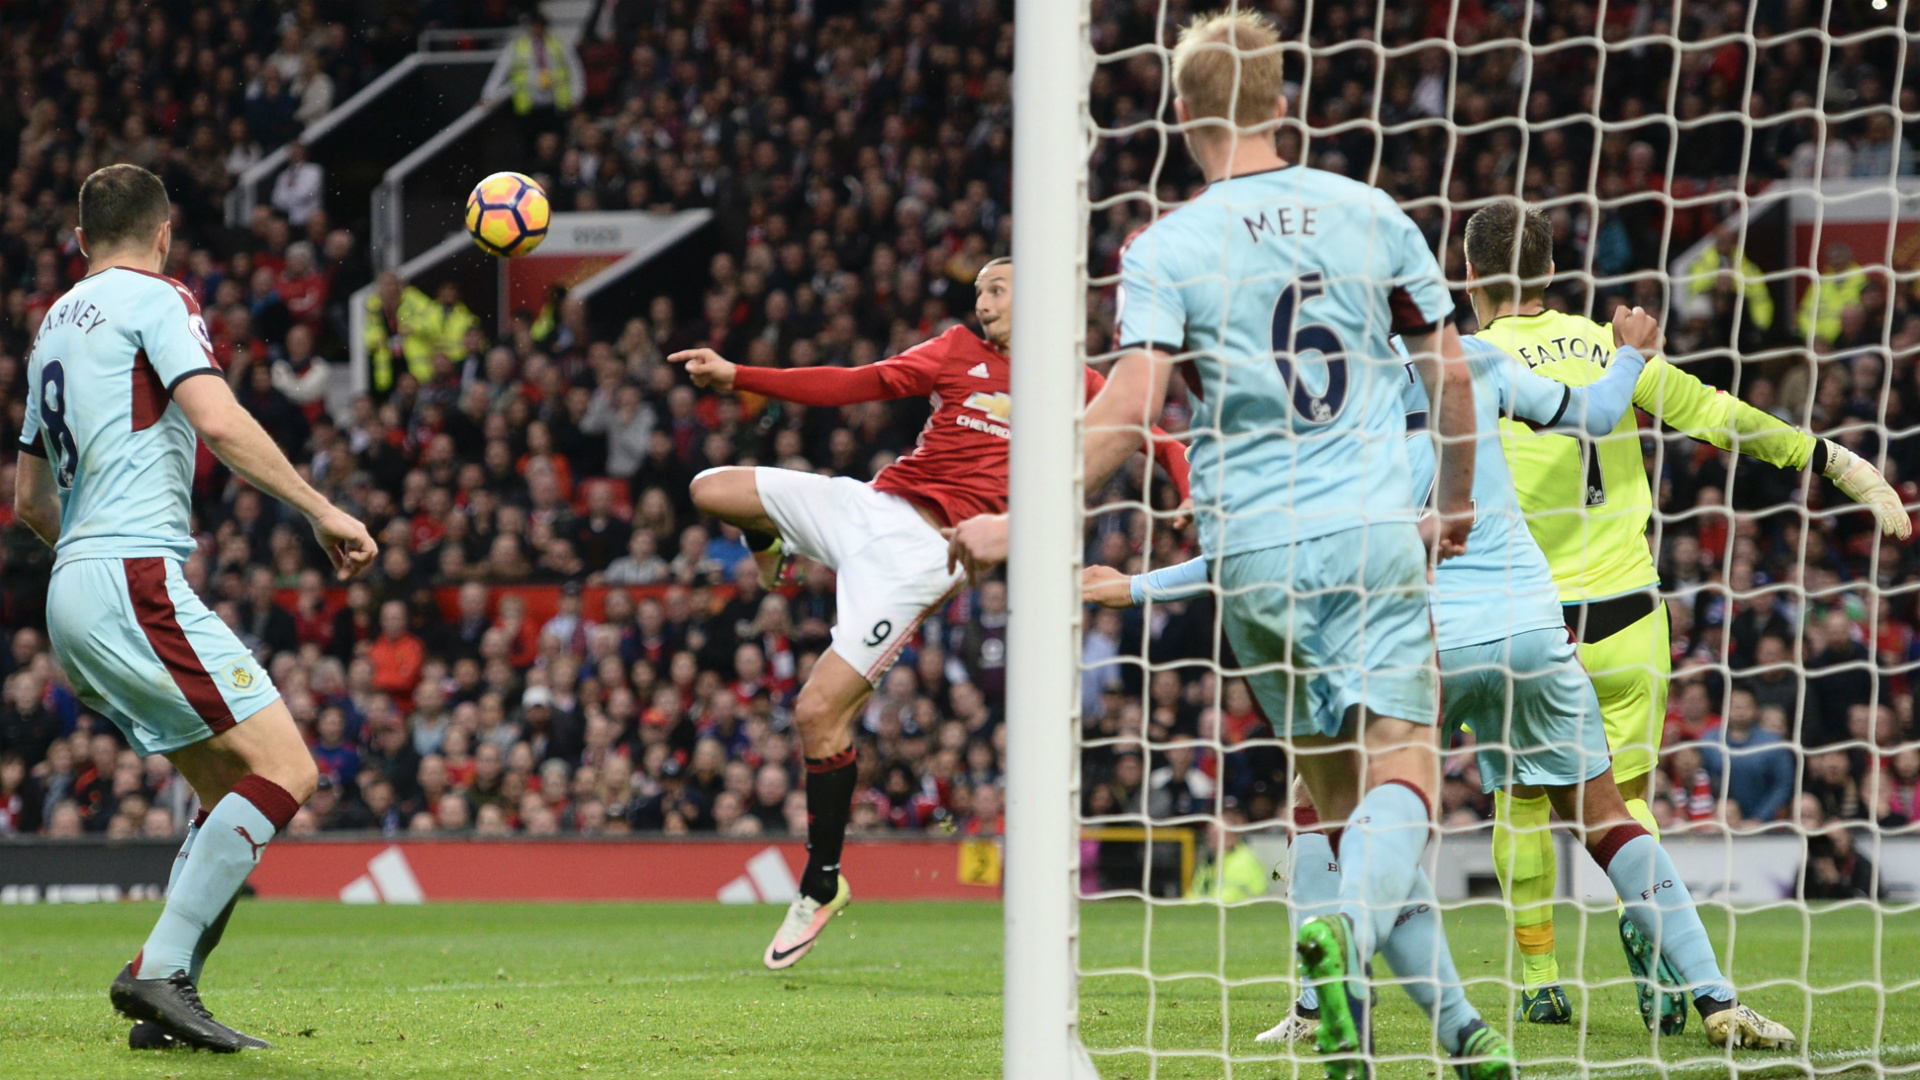 http://images.performgroup.com/di/library/GOAL_INTERNATIONAL/9b/5e/ibrahimovic-manchester-united-burnley_4egevxgapt201kx3mpcvdwj4q.jpg?t=286443504&w=620&h=430